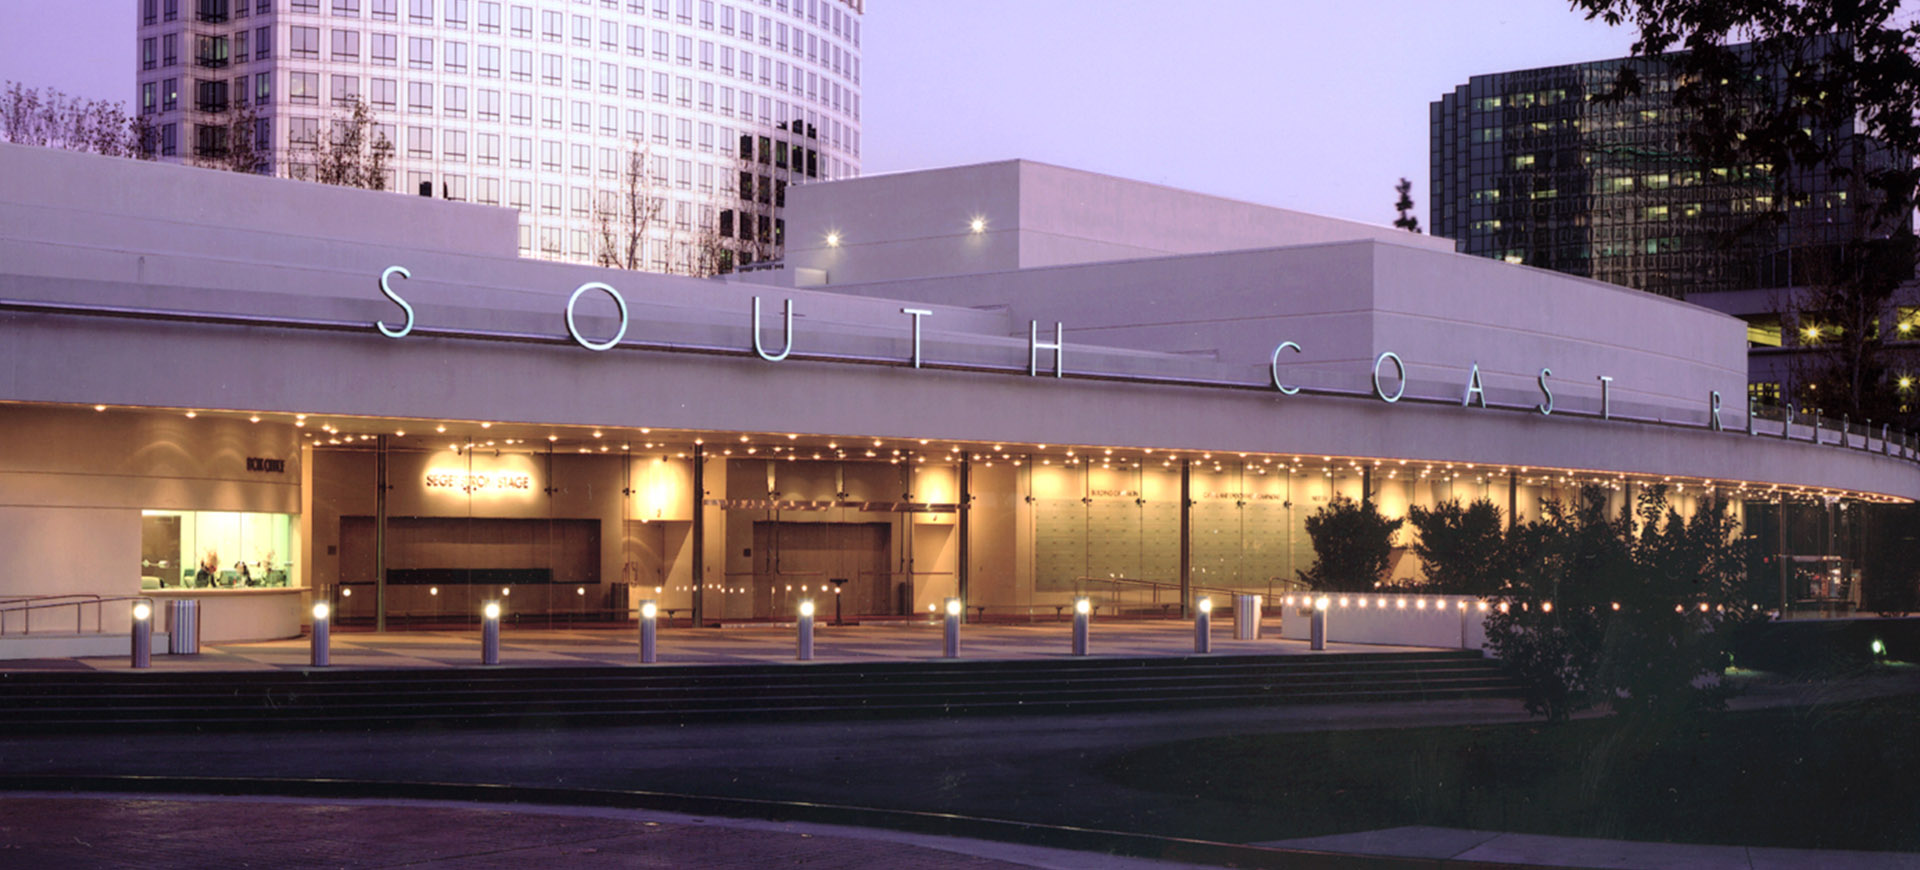 South Coast RepertoryBanner Image 1